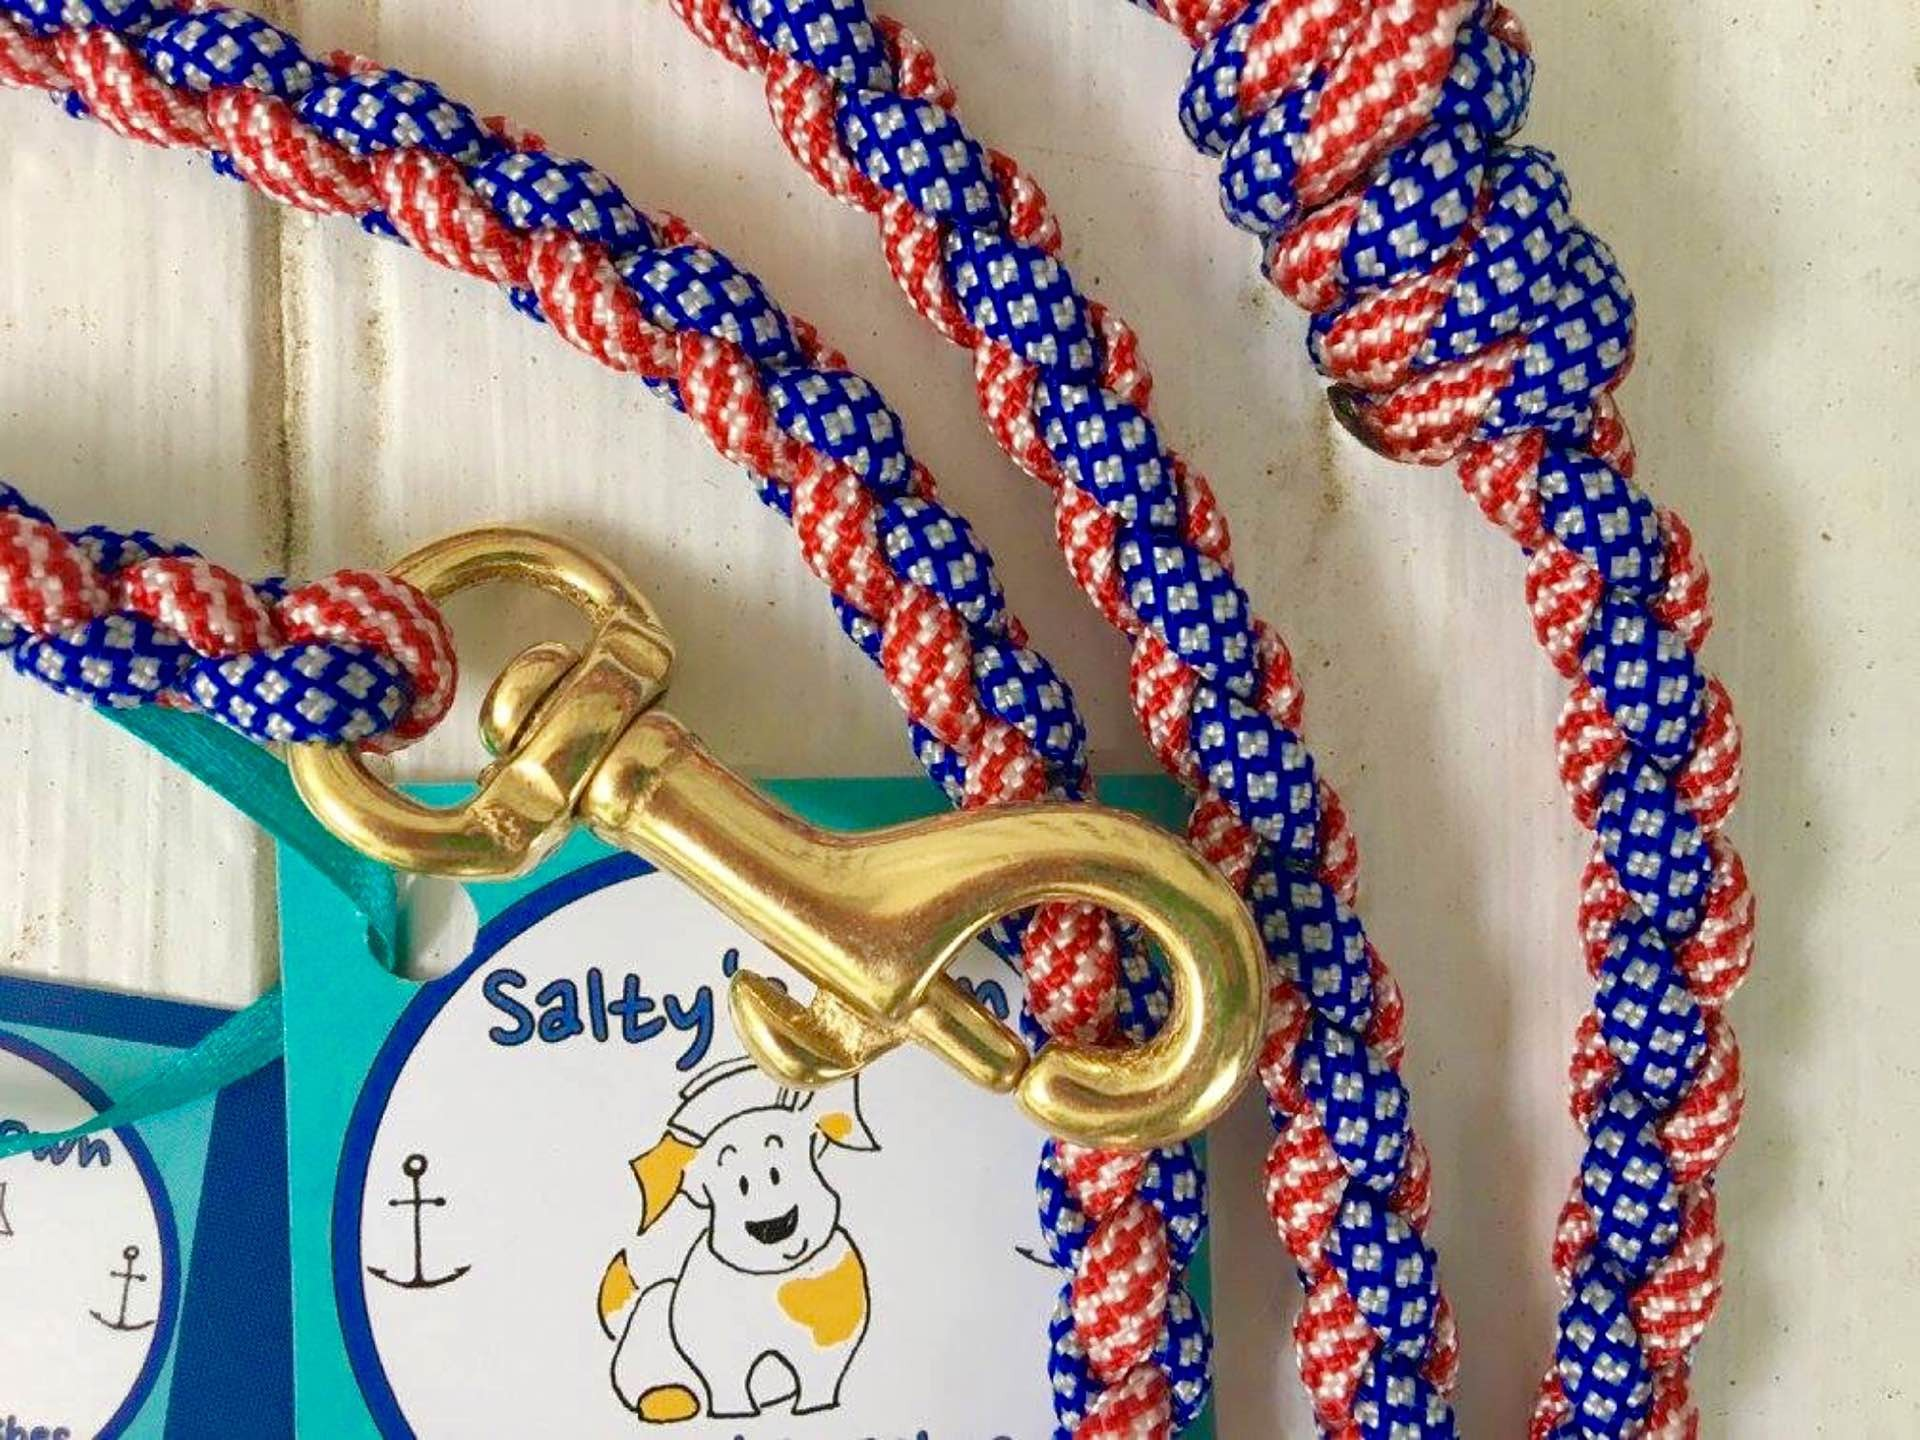 saltys-own-nautical-leashes